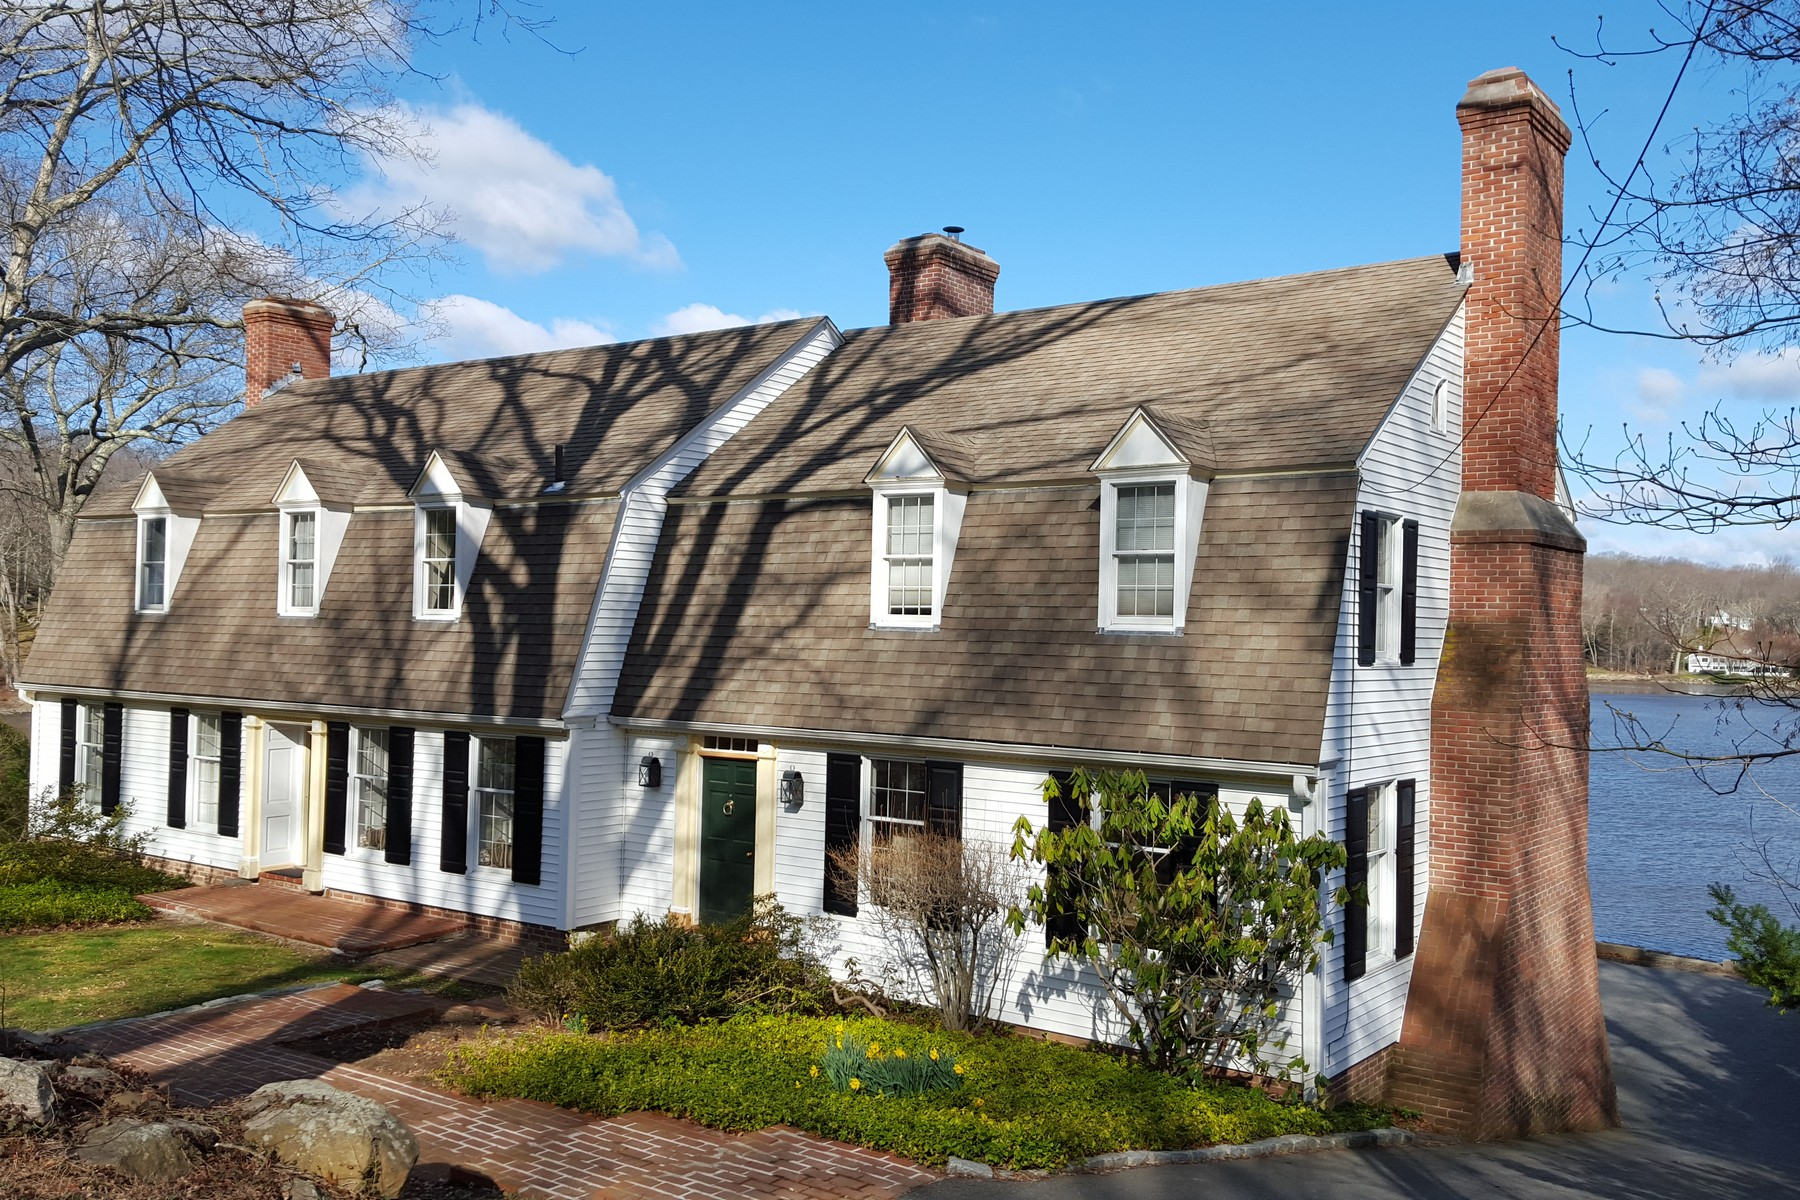 Moradia para Venda às Magnificent Colonial With Amazing Views 20 Hemlock Dr Essex, Connecticut, 06426 Estados Unidos